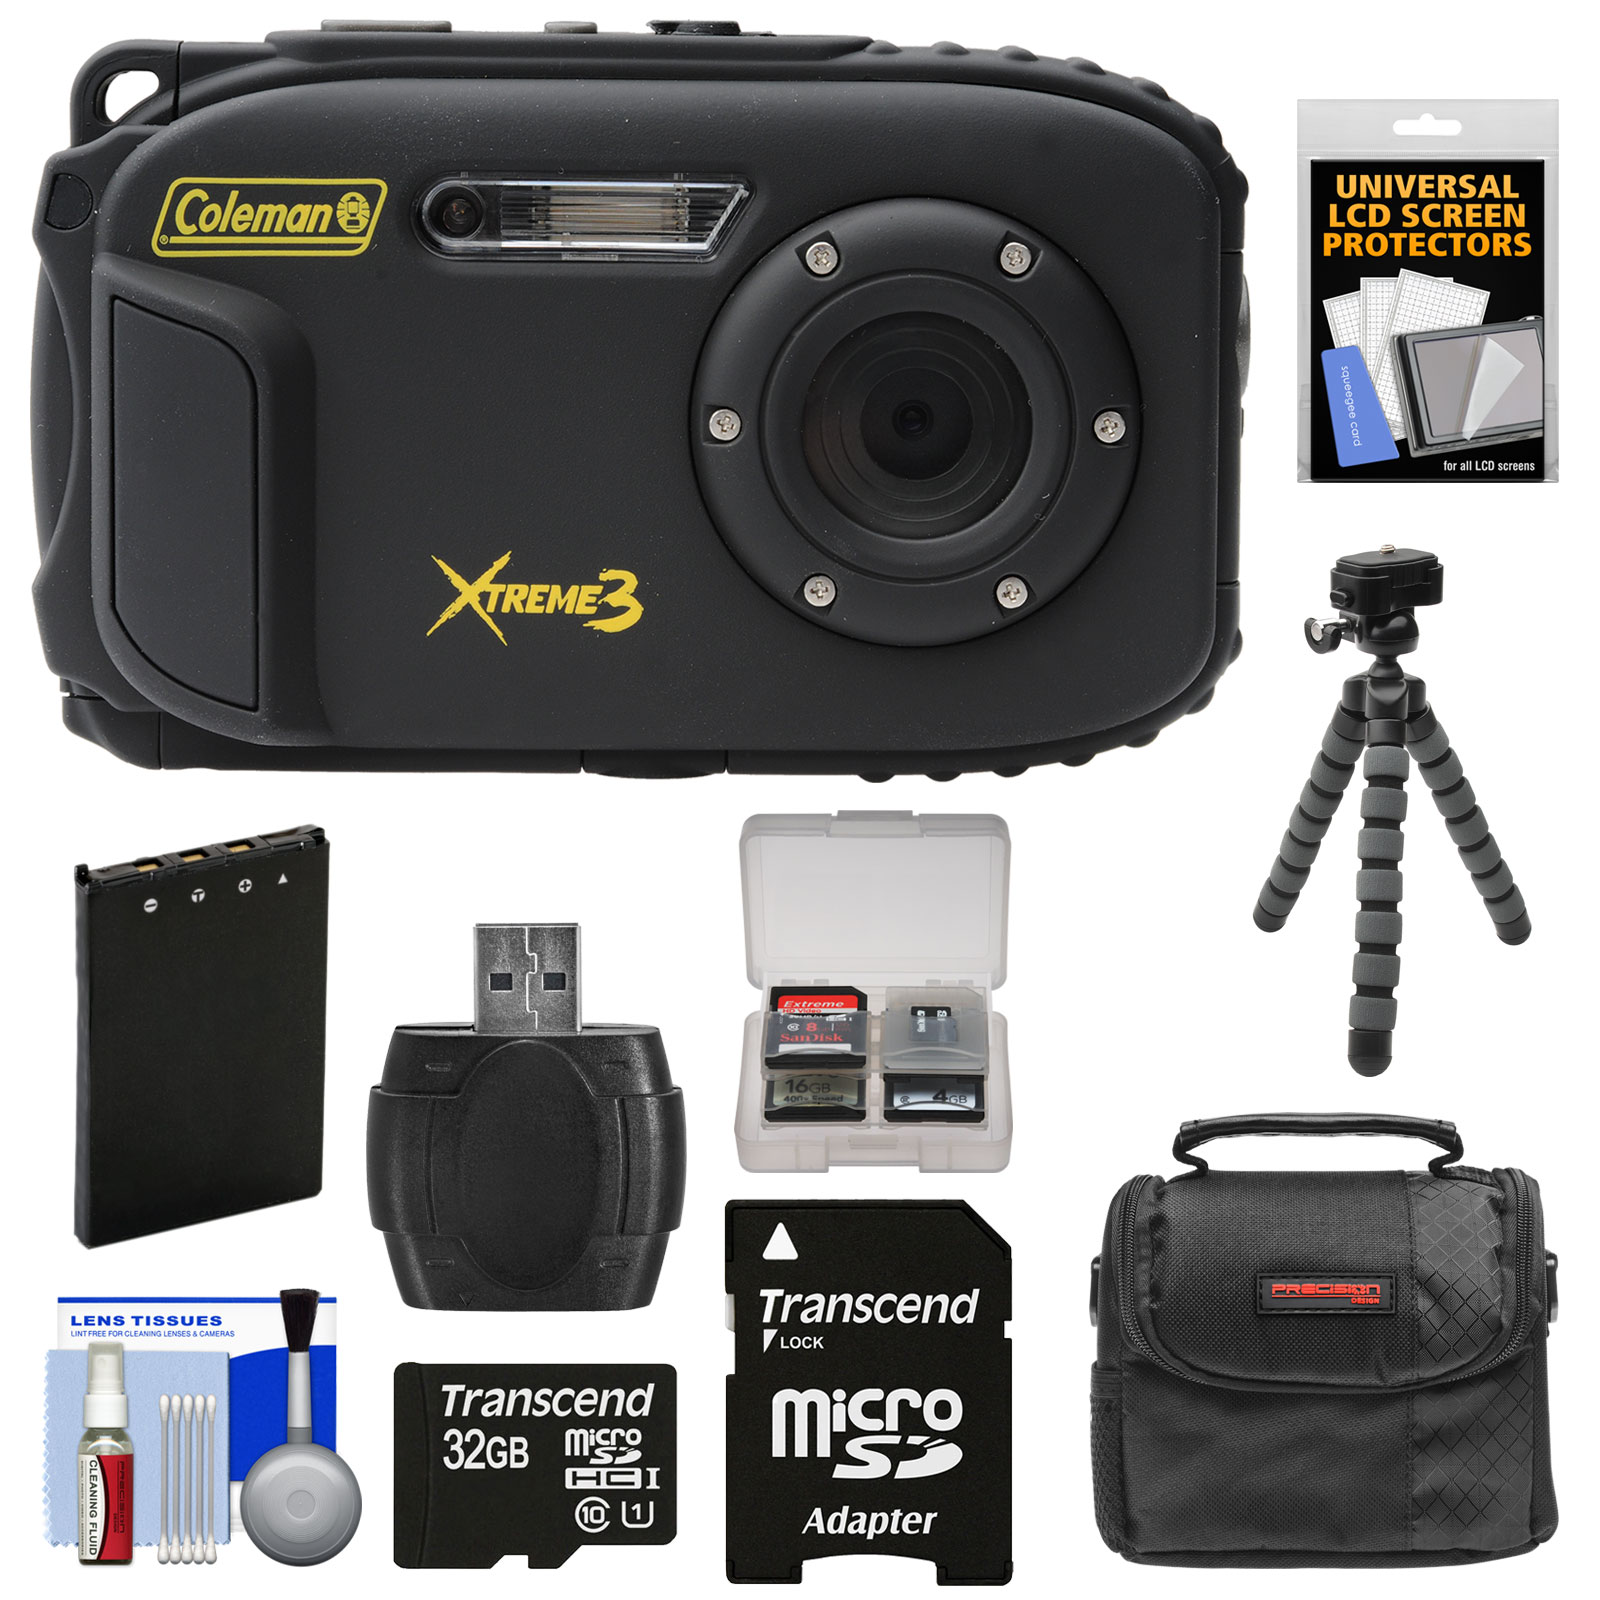 Coleman Xtreme3 C9WP Shock & Waterproof 1080p HD Digital Camera (Blue) with 32GB Card + Battery + Case + Flex Tripod + Kit